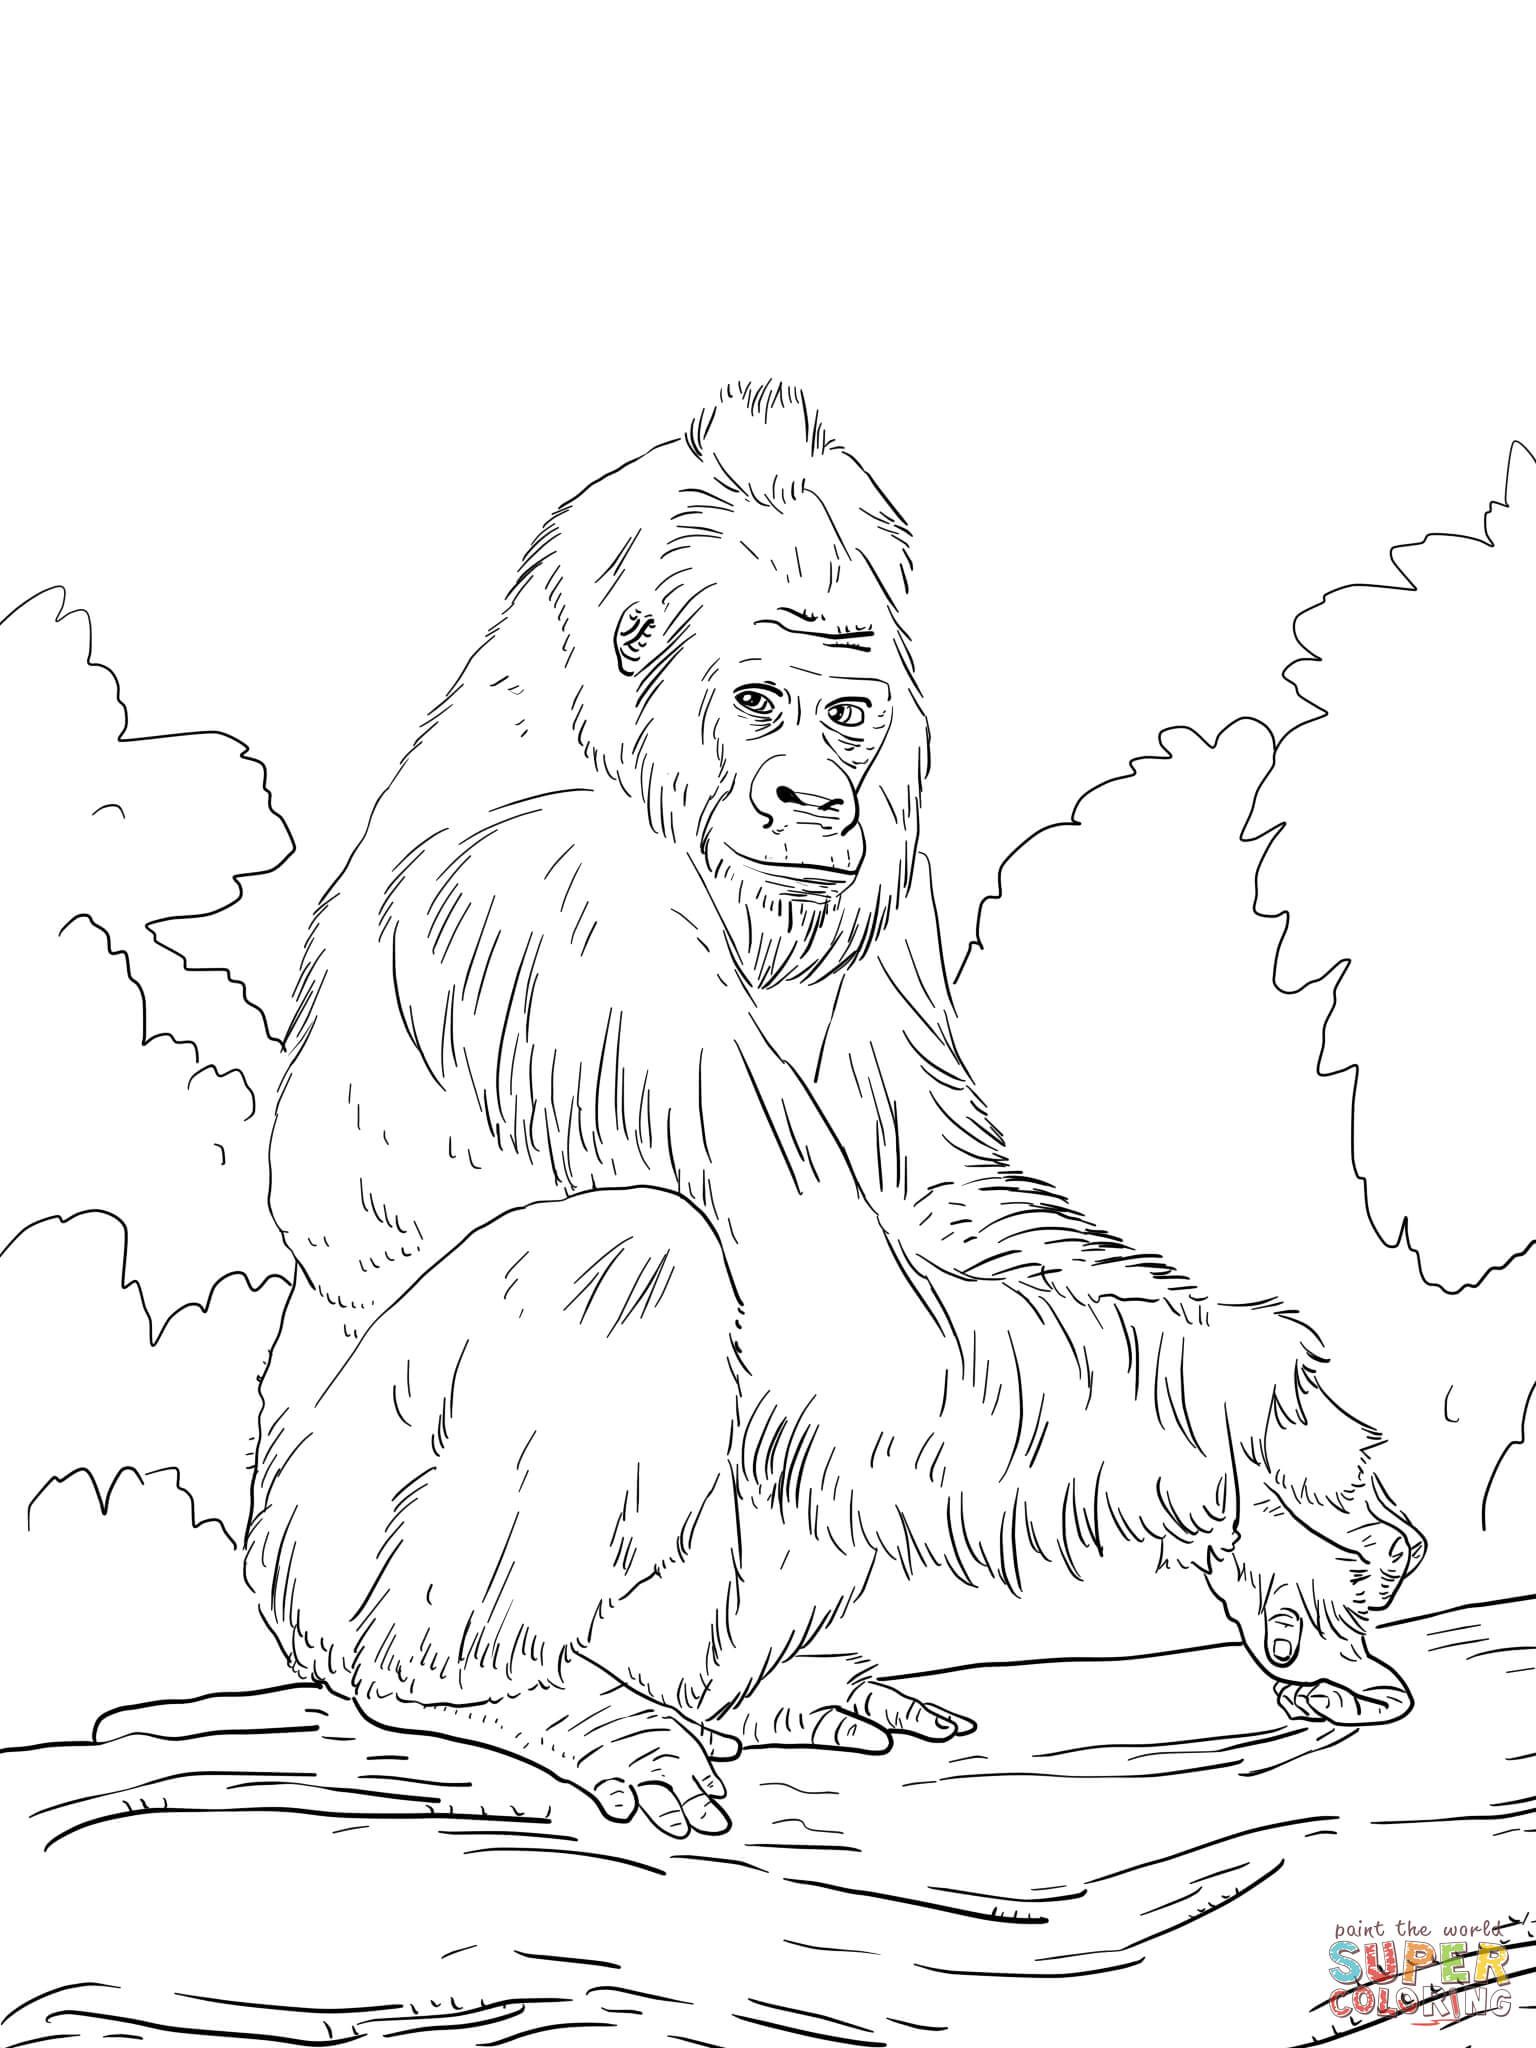 Gorilla Coloring Pages Preschool And Kindergarten Monkey